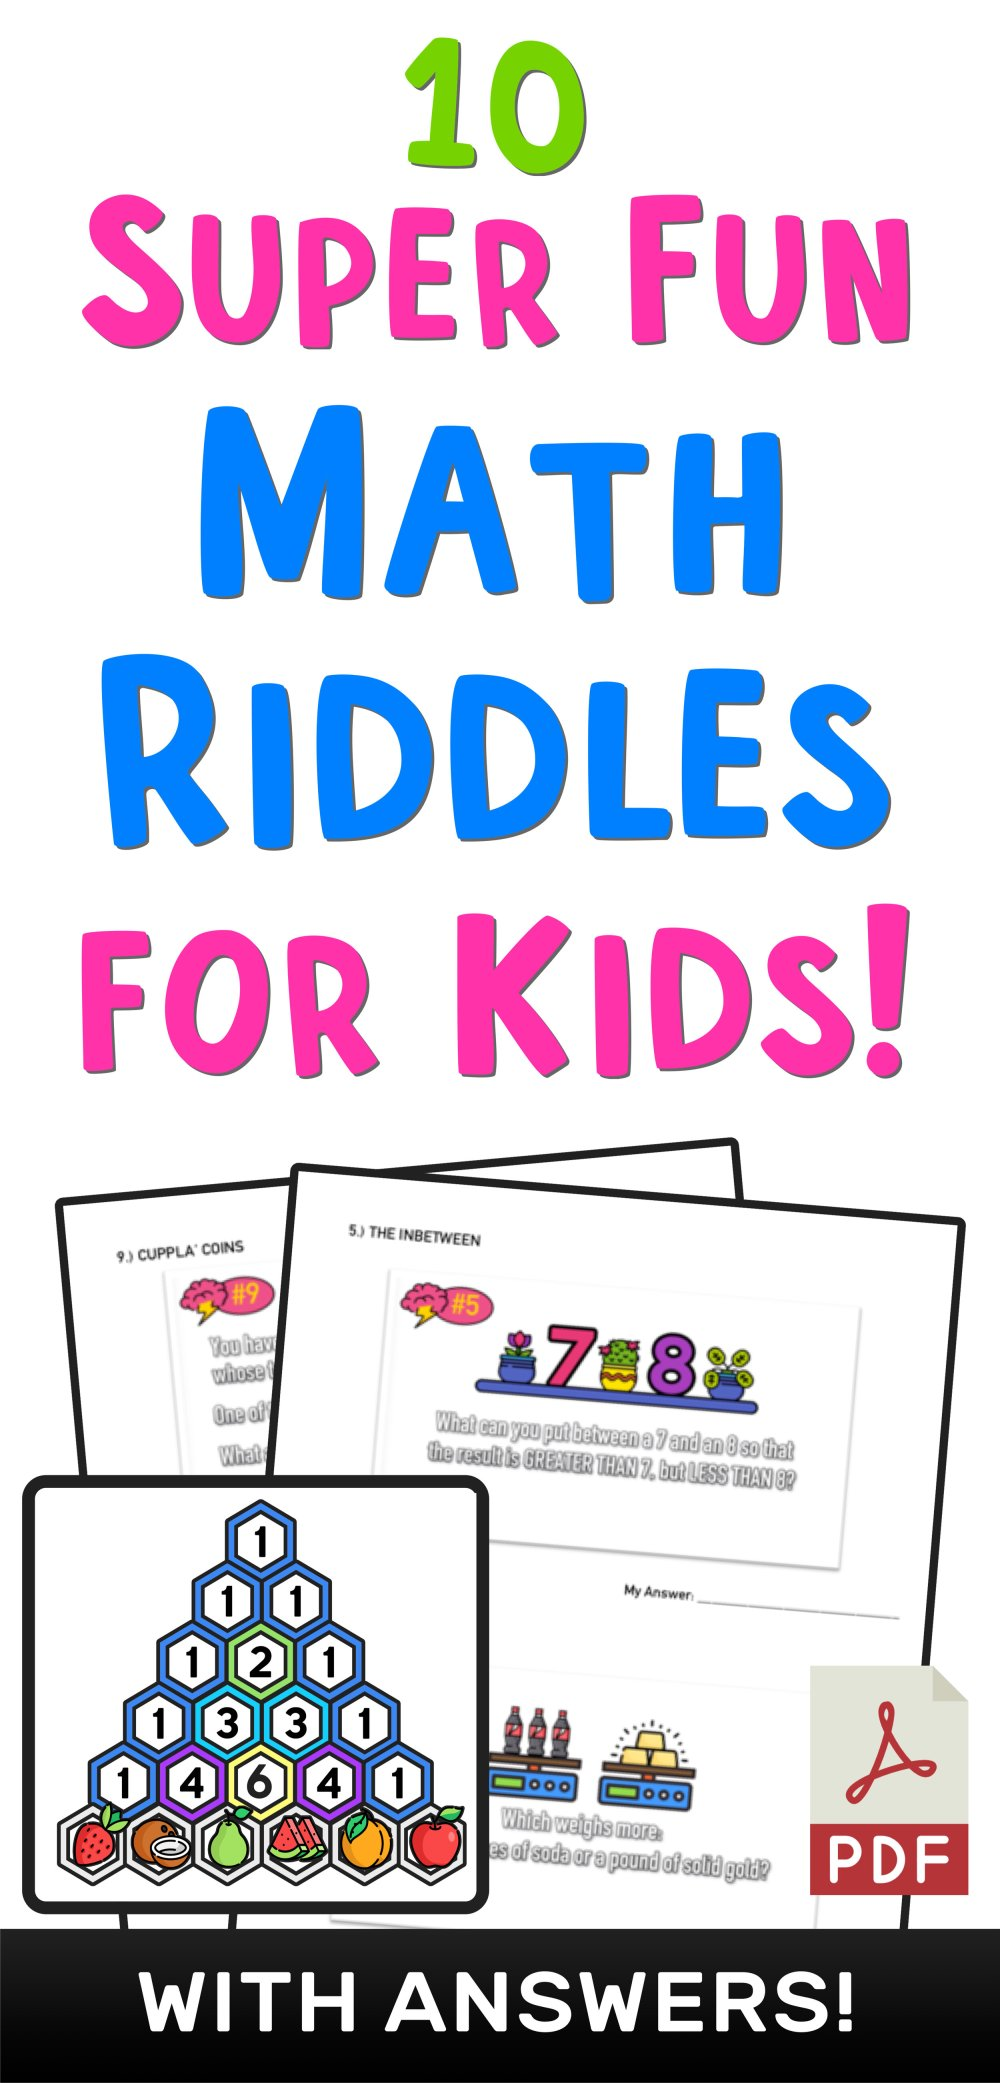 medium resolution of 10 Super Fun Math Riddles for Kids Ages 10+ (with Answers) — Mashup Math